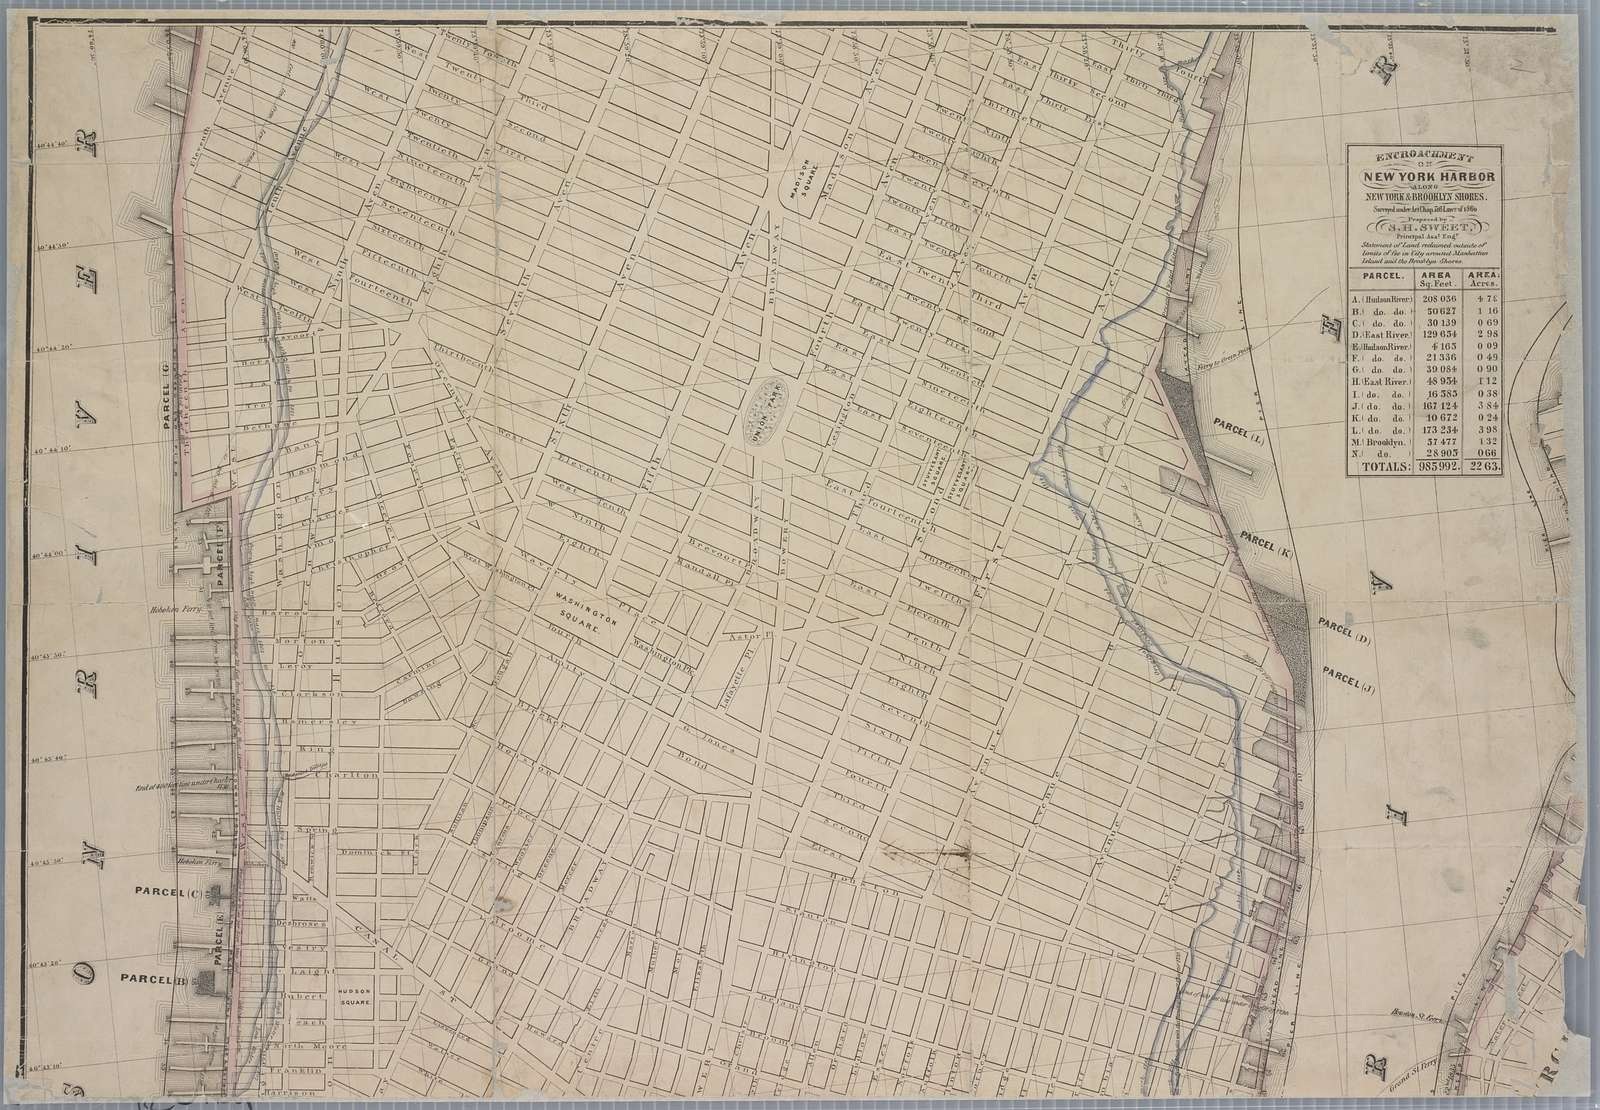 New map of that part of the city of New York south from 20th Street on the Hudson & 35th Street on the East River : showing the position of Greenwich, Washington and West Streets on the Hudson River, and Pearl, Water, Front, Cherry & Tompkins Sts. on the East River : also the Brooklyn shore from Bobine House to Red Hook Point : also the high & low water  mark as developed from the original city grants : the ordinance lines of 1795, 1796 & 1808 and the lawful boundary of the city